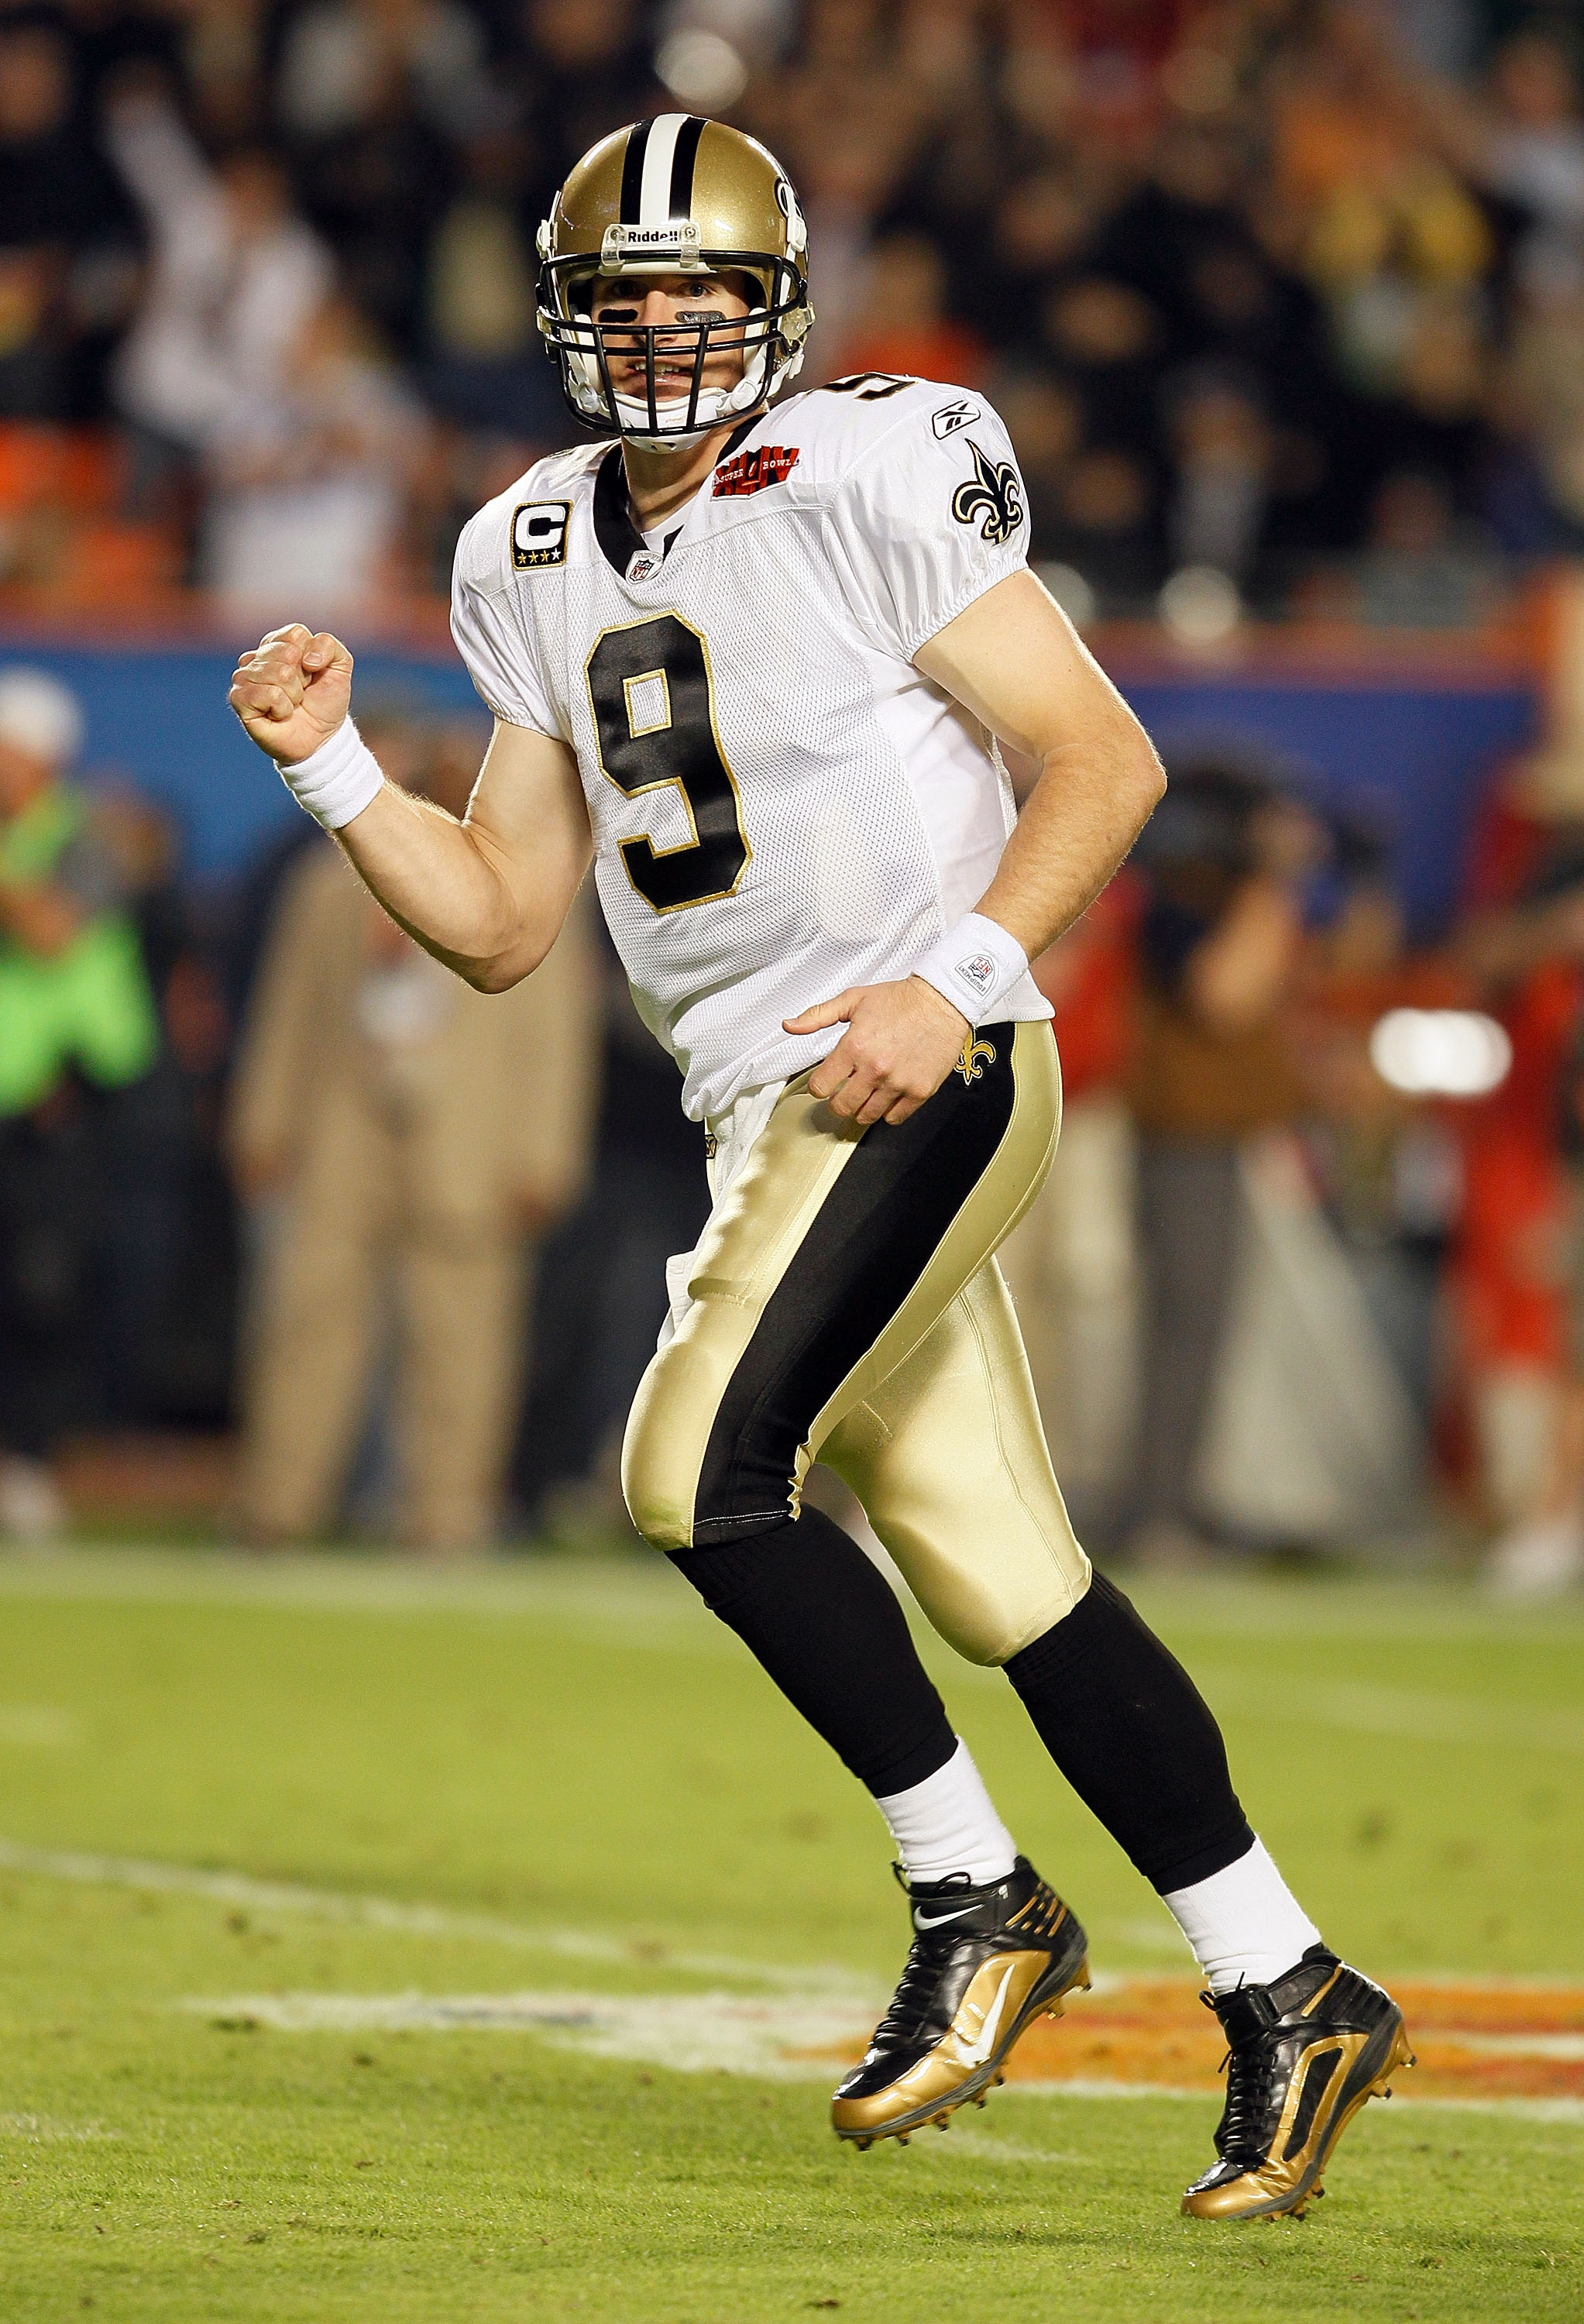 Drew Brees will get the chance to recreate history.